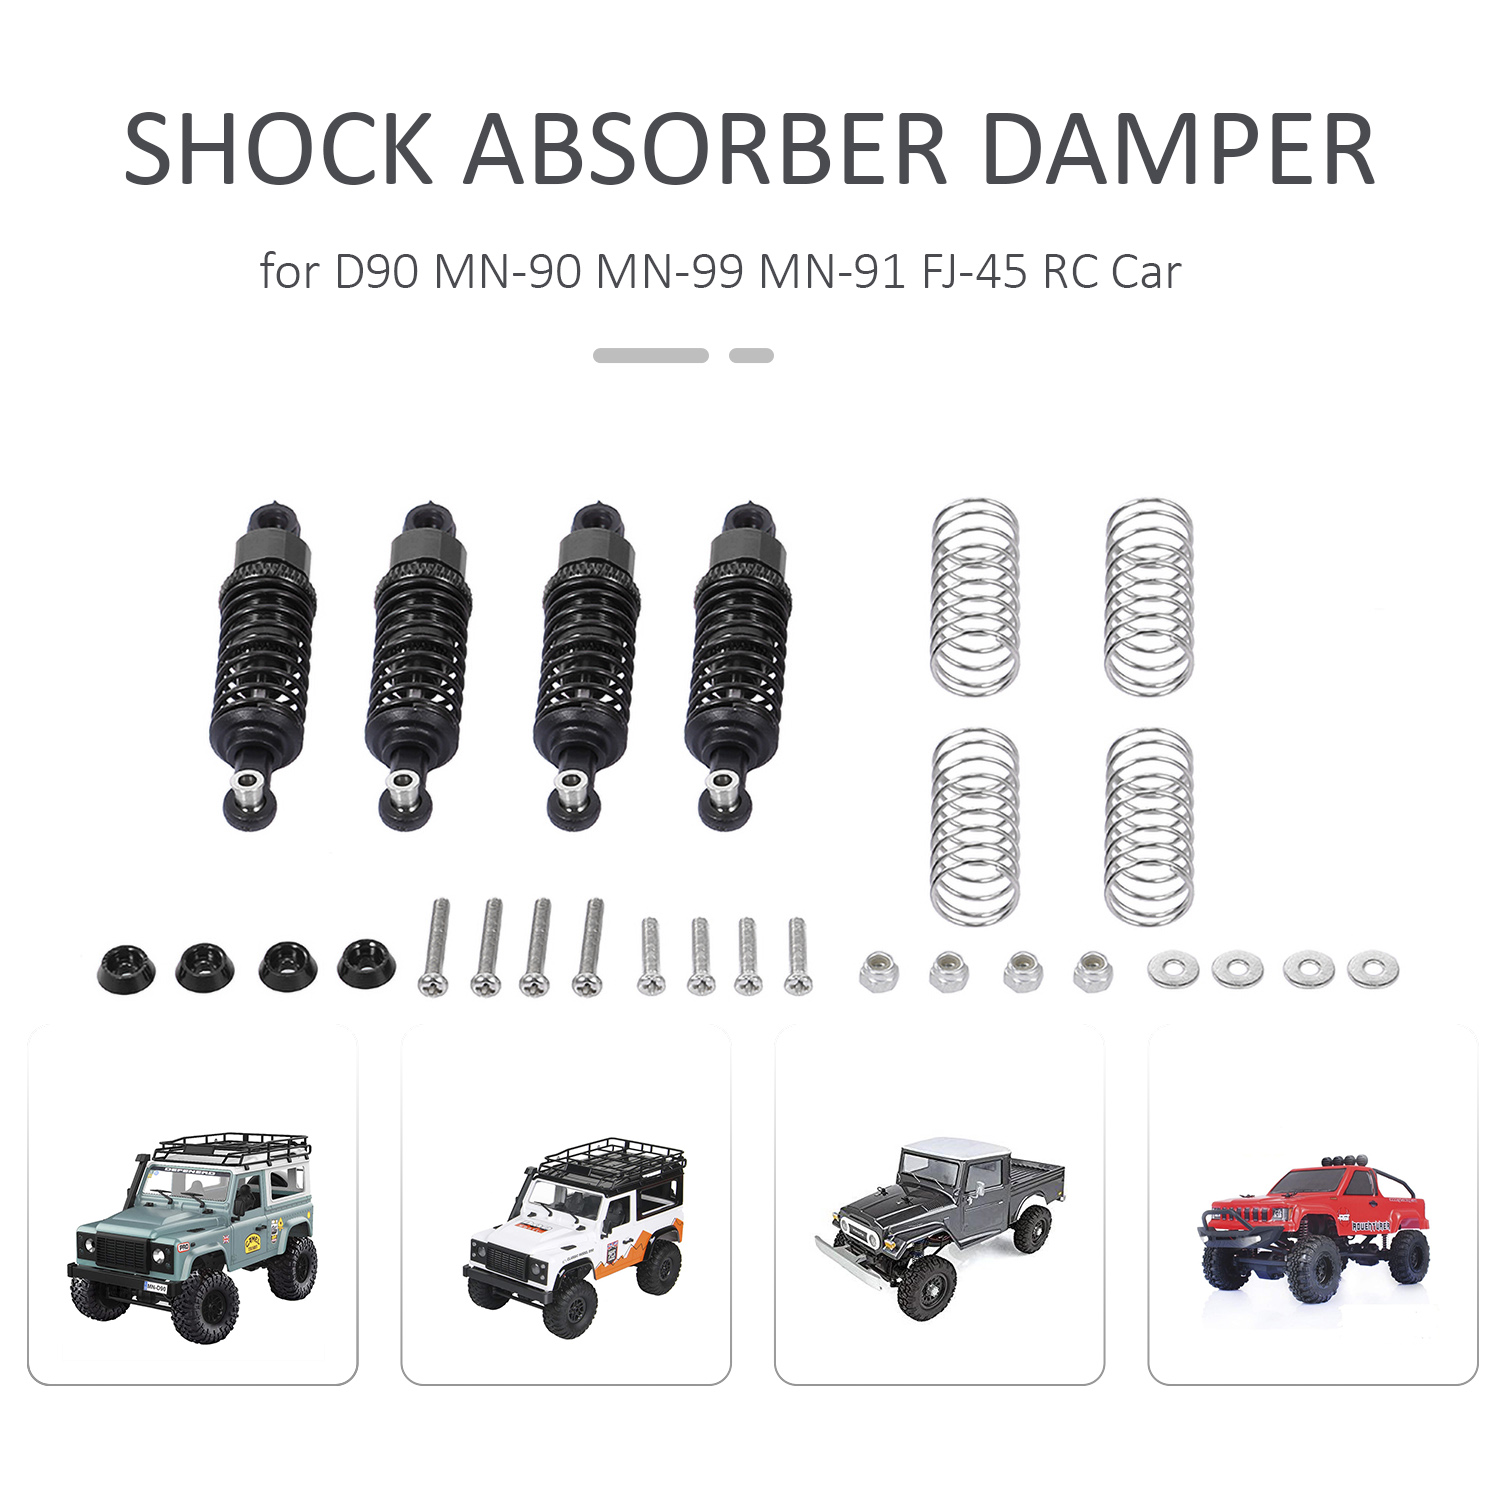 Image 2 - Aluminum Alloy Shock Absorber Damper for D90 MN 90 MN 99 MN 91 FJ 45 RC Car 1/12 Rock Crawler Upgrade PartsParts & Accessories   -